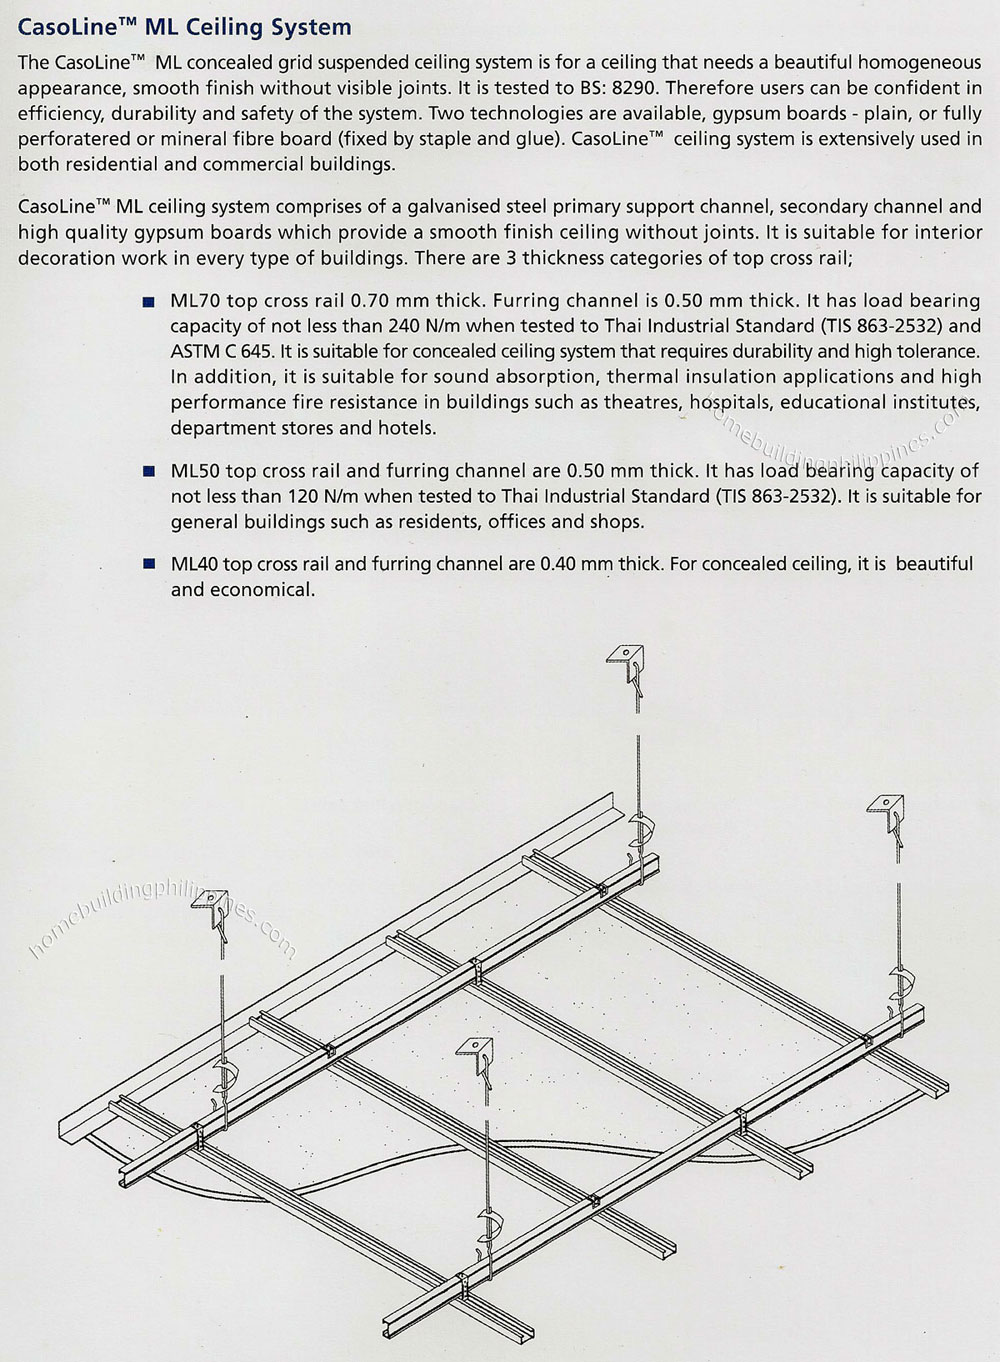 Casoline Ml Ceiling System